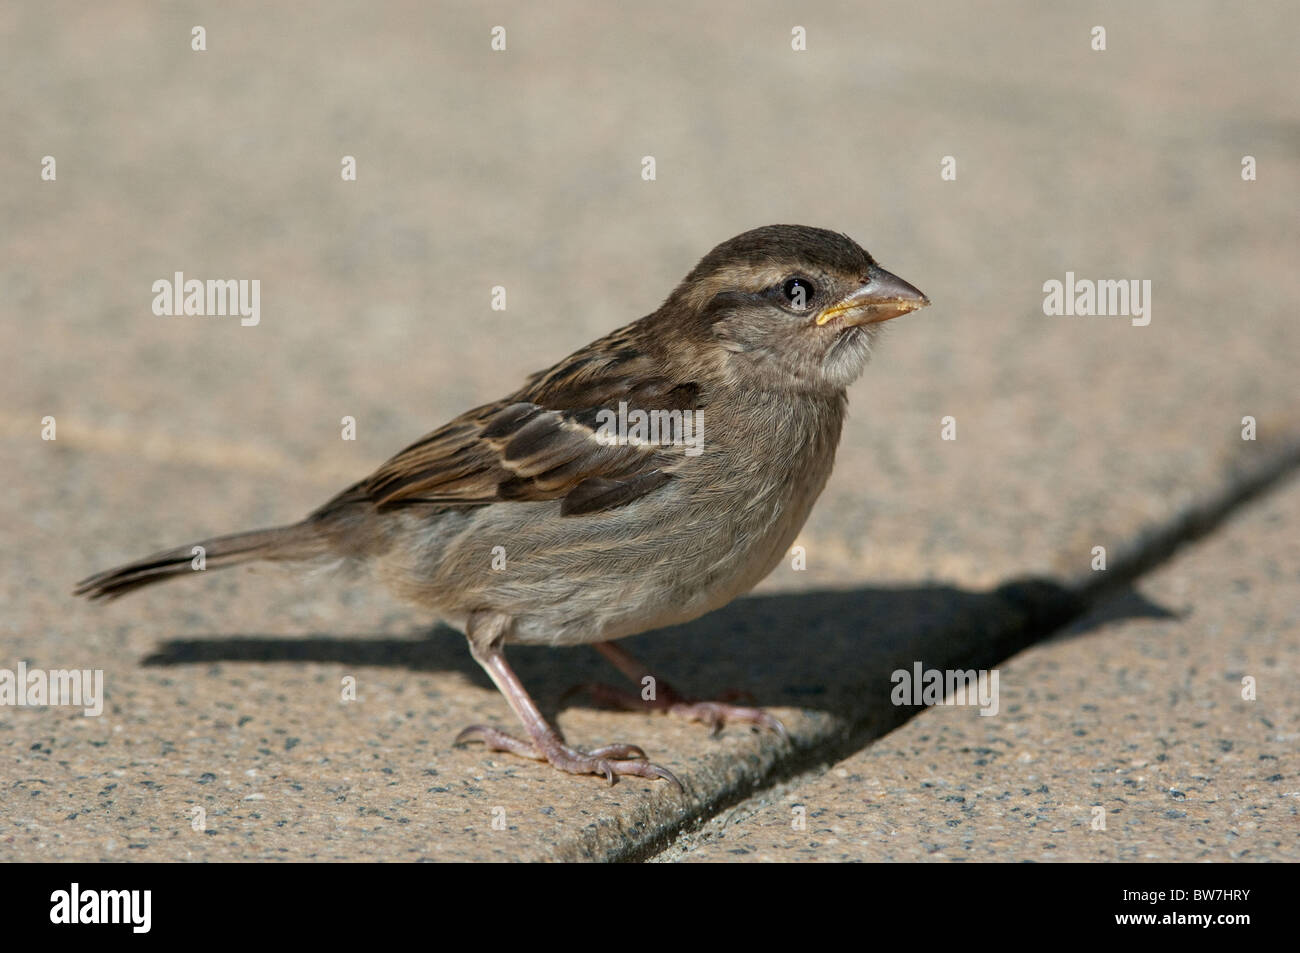 House Sparrow (Passer domesticus), juvenile standing on pavement. - Stock Image